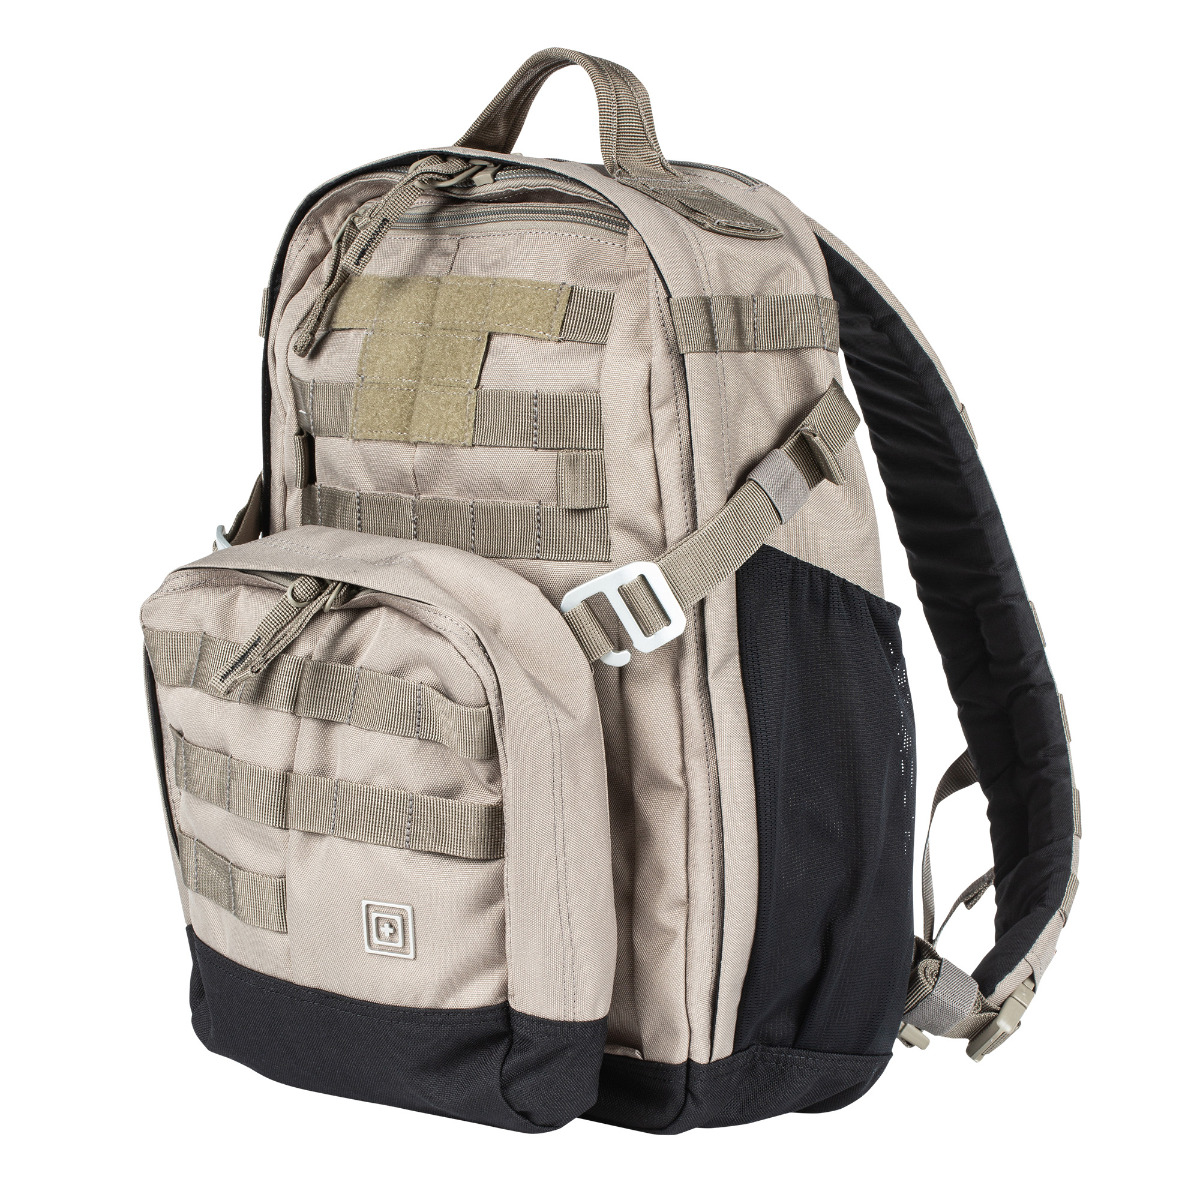 5.11 Tactical Women's Mira 2-in-1 Pack 25L thumbnail